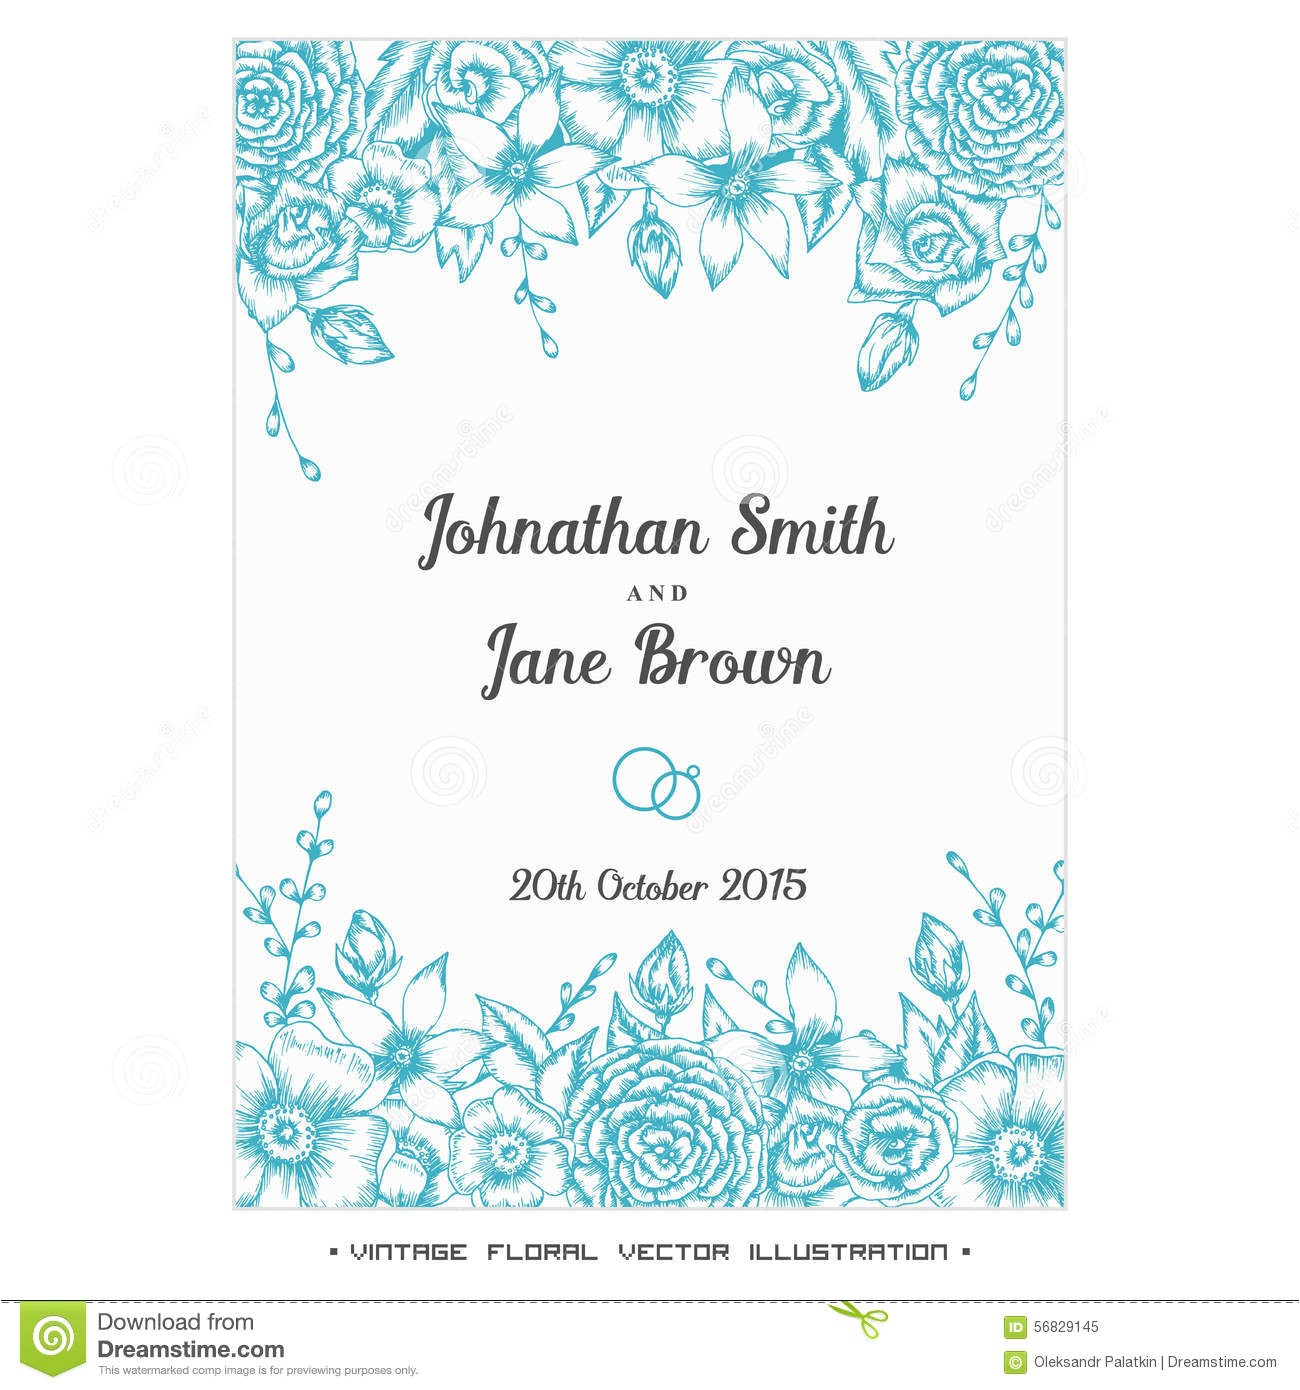 stock illustration vector vintage floral wedding invitation hand drawn flower border image56829145